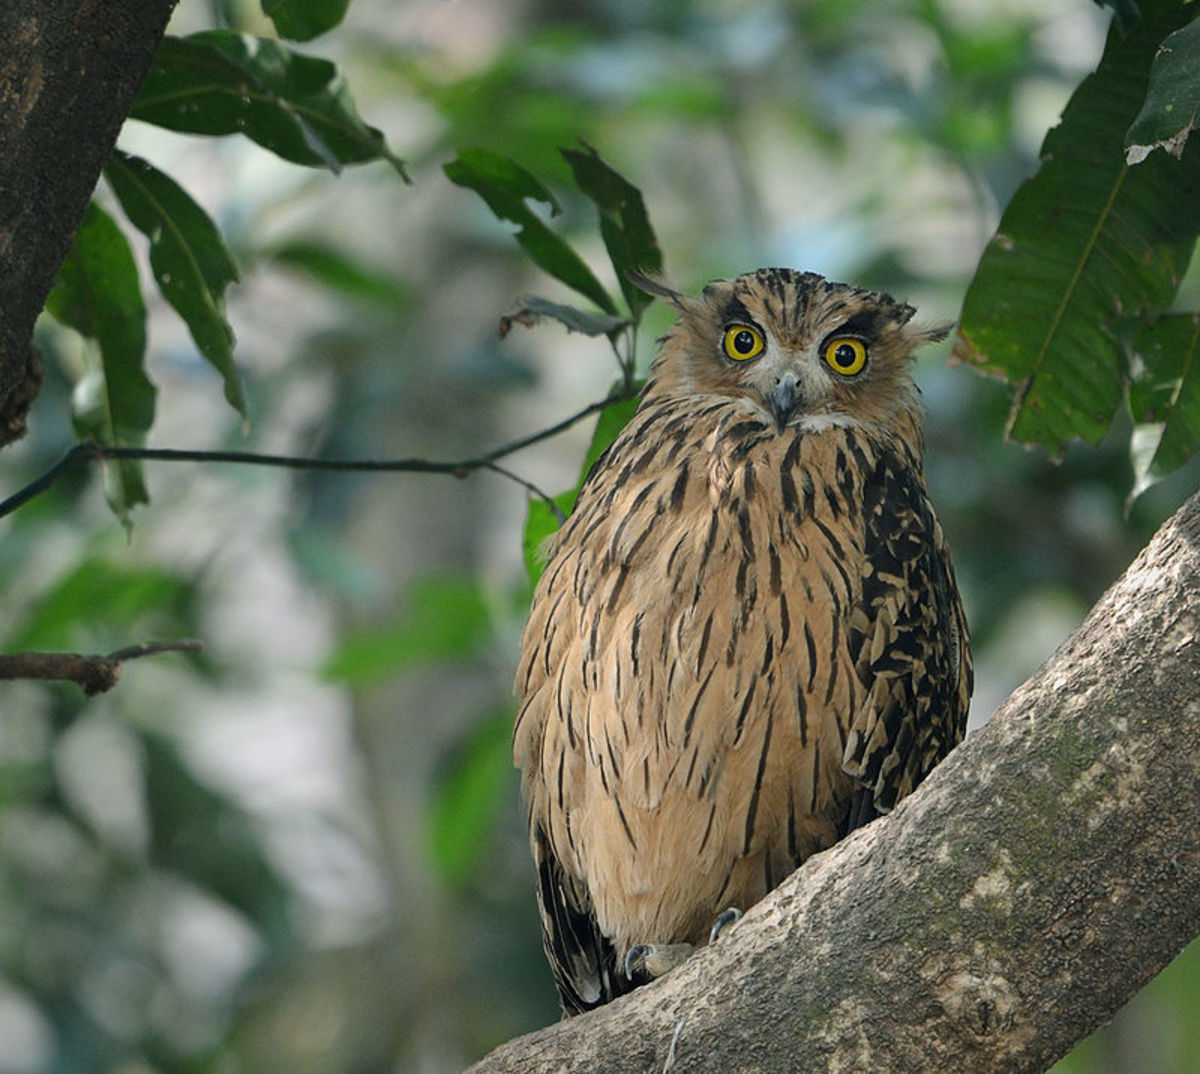 Bubo Flavipes - Jim Corbett National Park, Uttarakhand, India